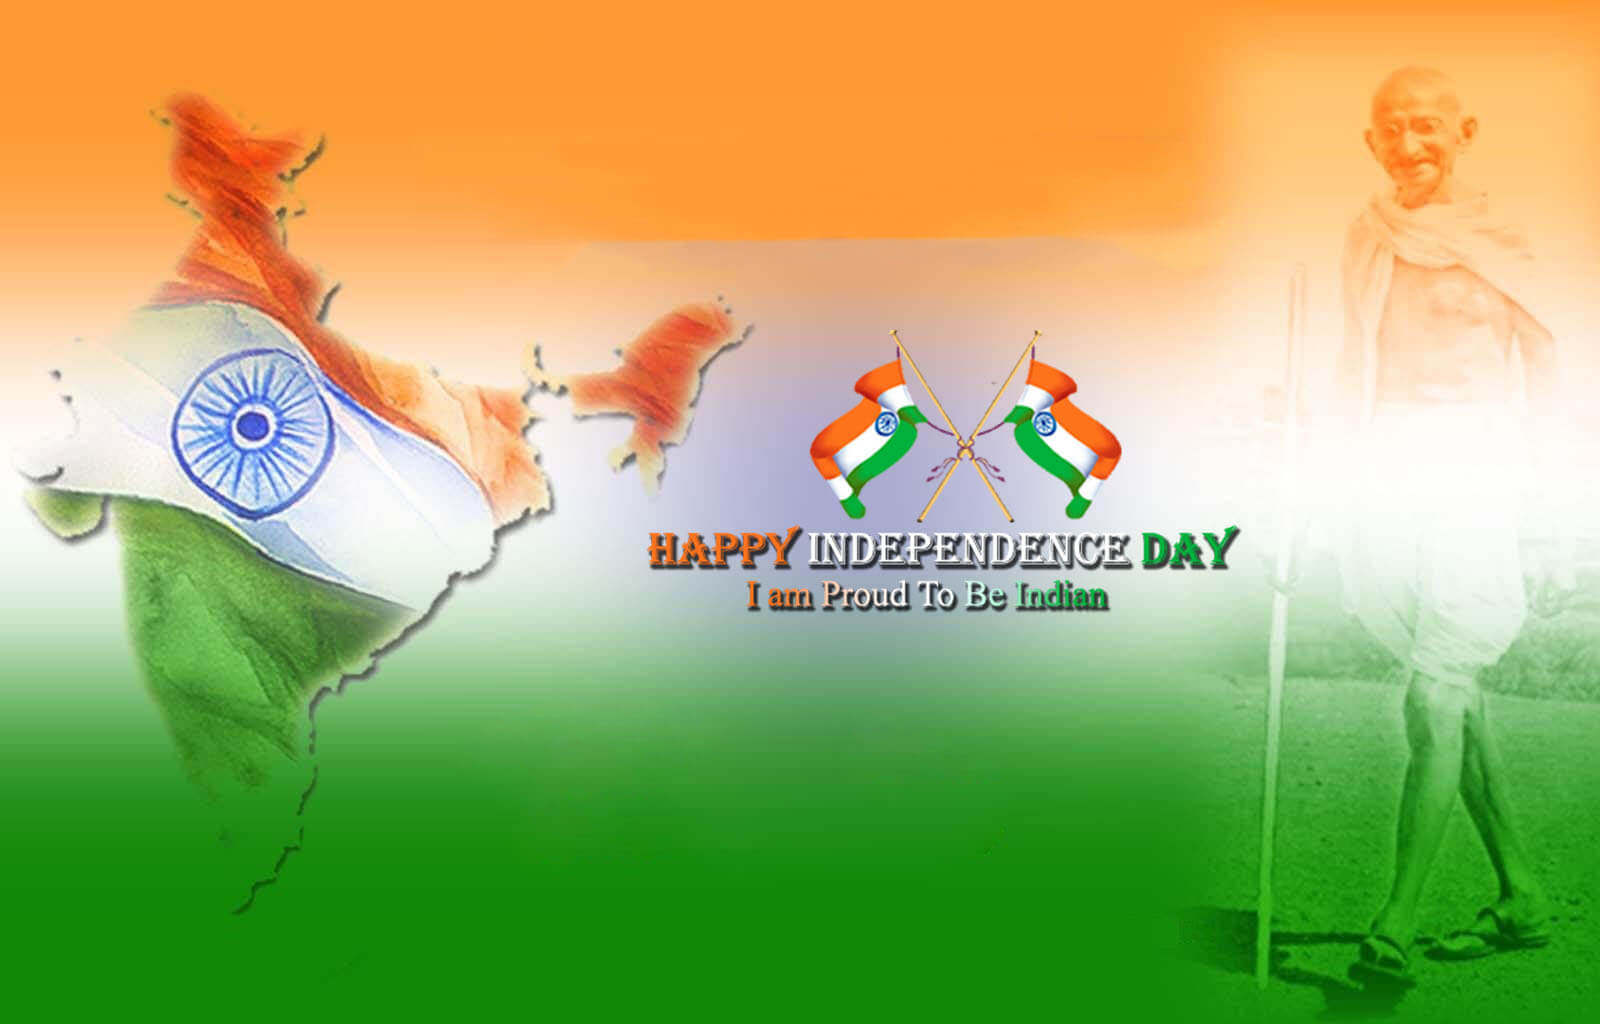 happy india independence day flag august 15th mahatma gandhi